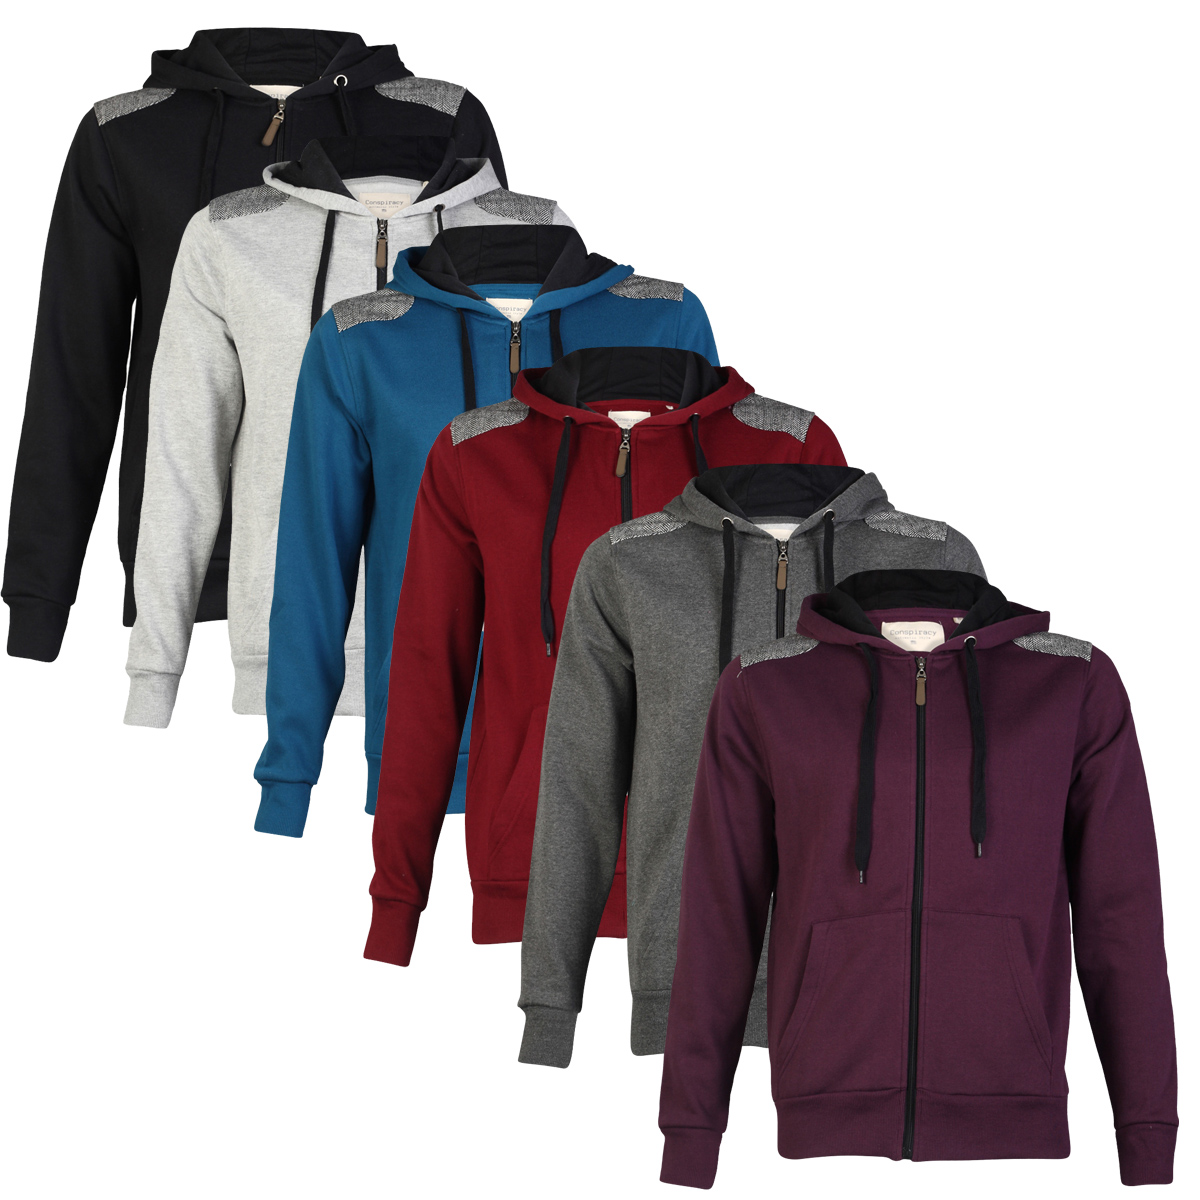 Shop the Latest Collection of Men's Hoodies & Sweatshirts in a variety of Styles & Colors at warmongeri.ga & look sharp where ever you go. FREE SHIPPING AVAILABLE! American Rag Men's Zip Up Hoodie, Created for Macy's $ Sale $